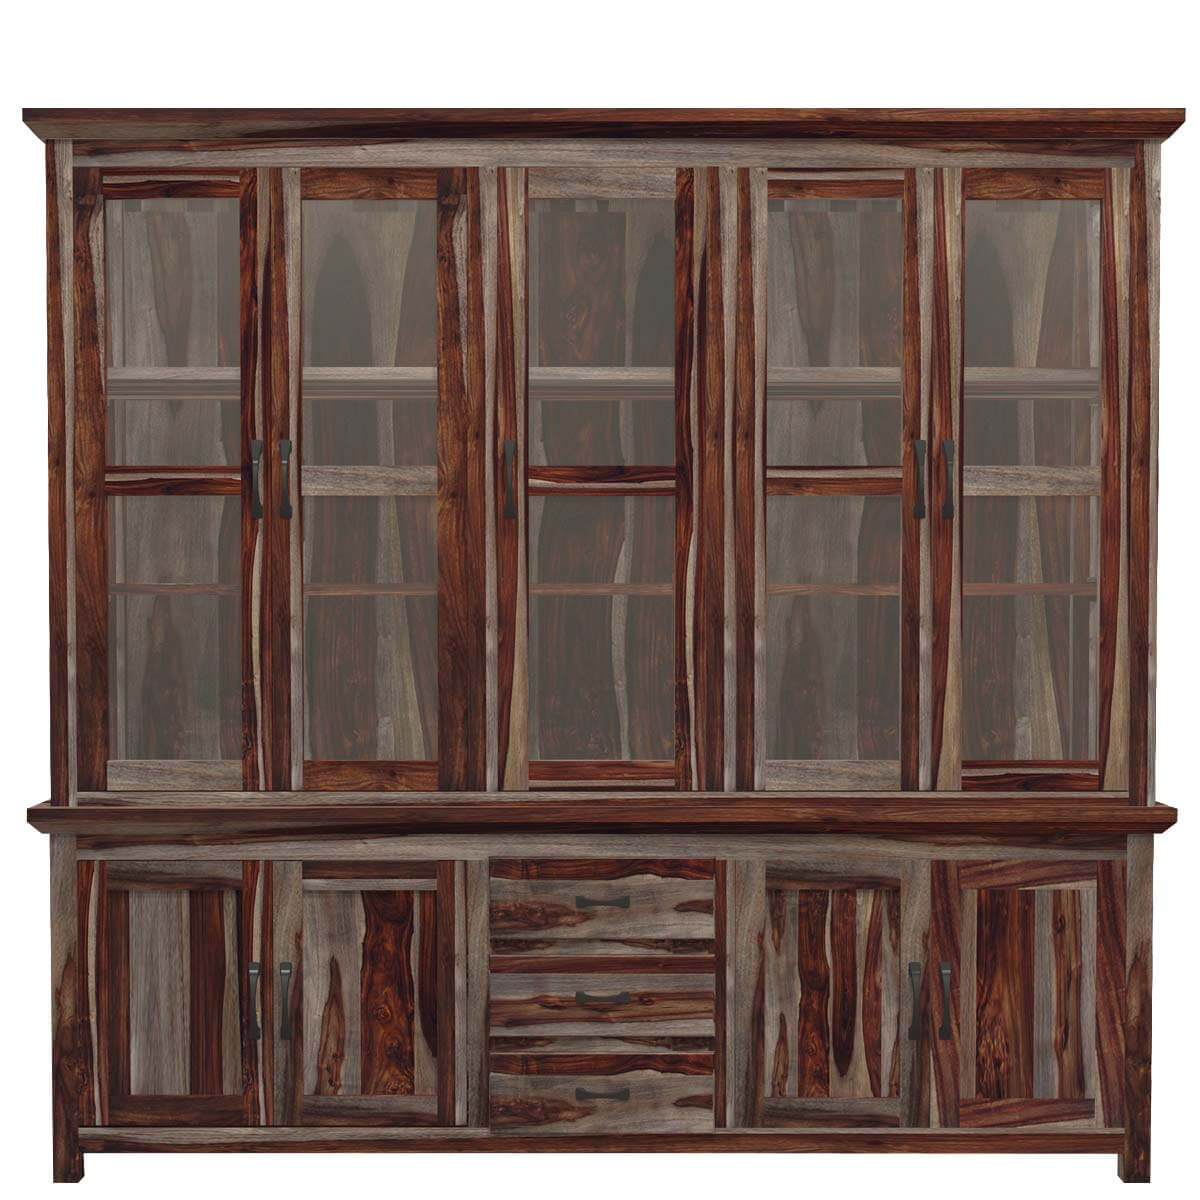 Dallas Ranch Solid Wood Rustic Dining Table Chairs Hutch Set: Dallas Ranch Rustic Solid Wood Glass Door Dining China Hutch